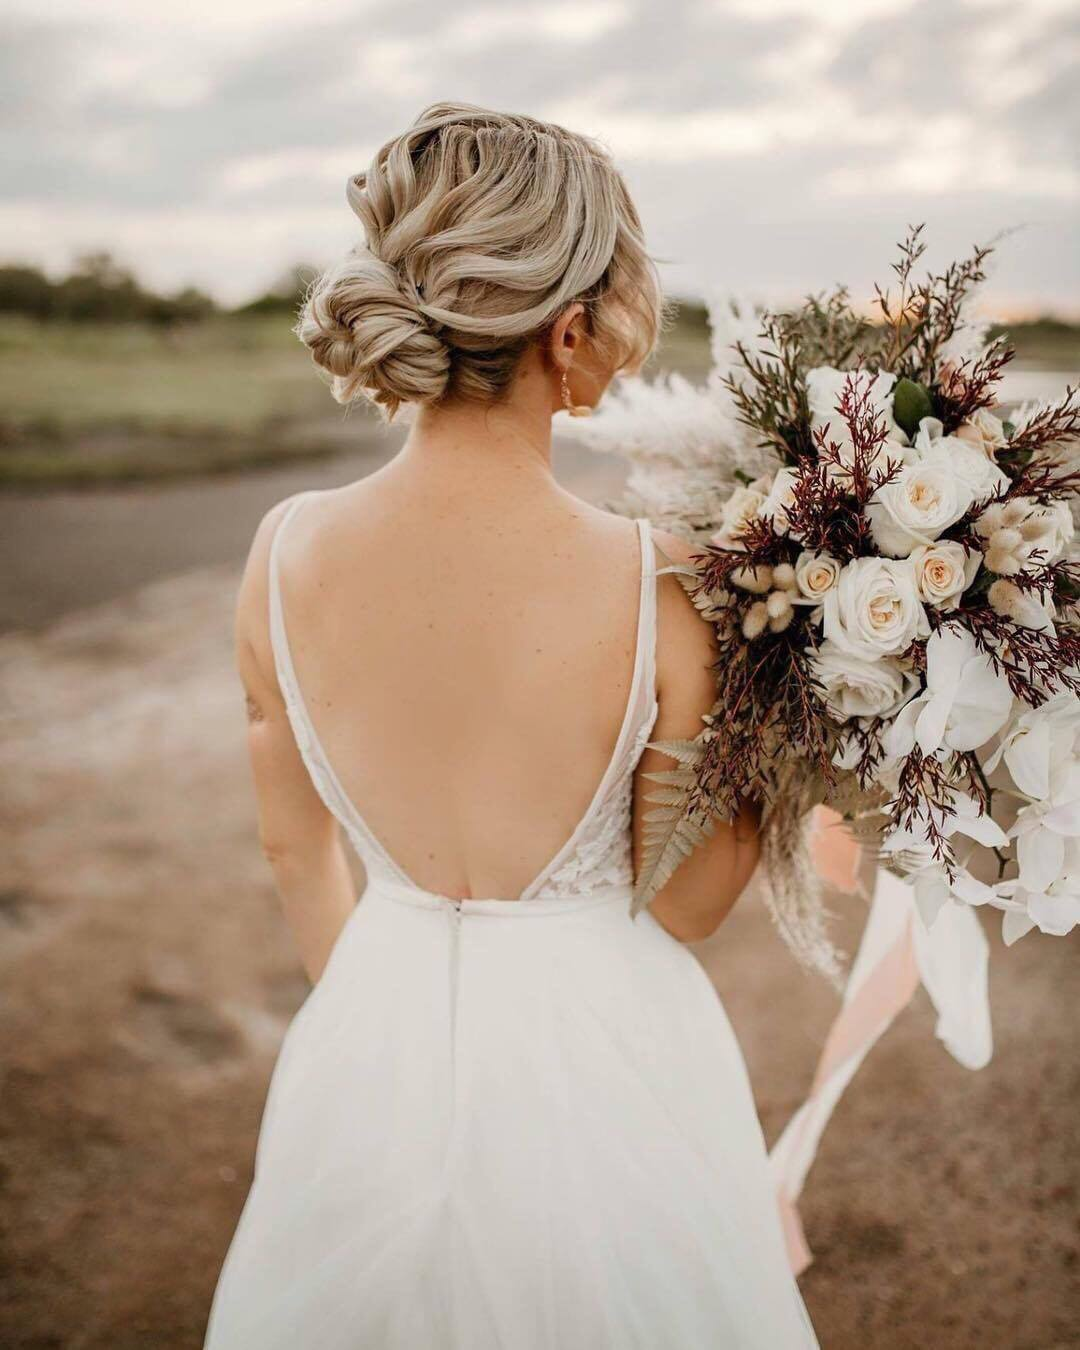 BOHO BRIDE BOHO HAIRSTYLES HUNTER & CO PHOTOGRAPHY TOWNSVILLE